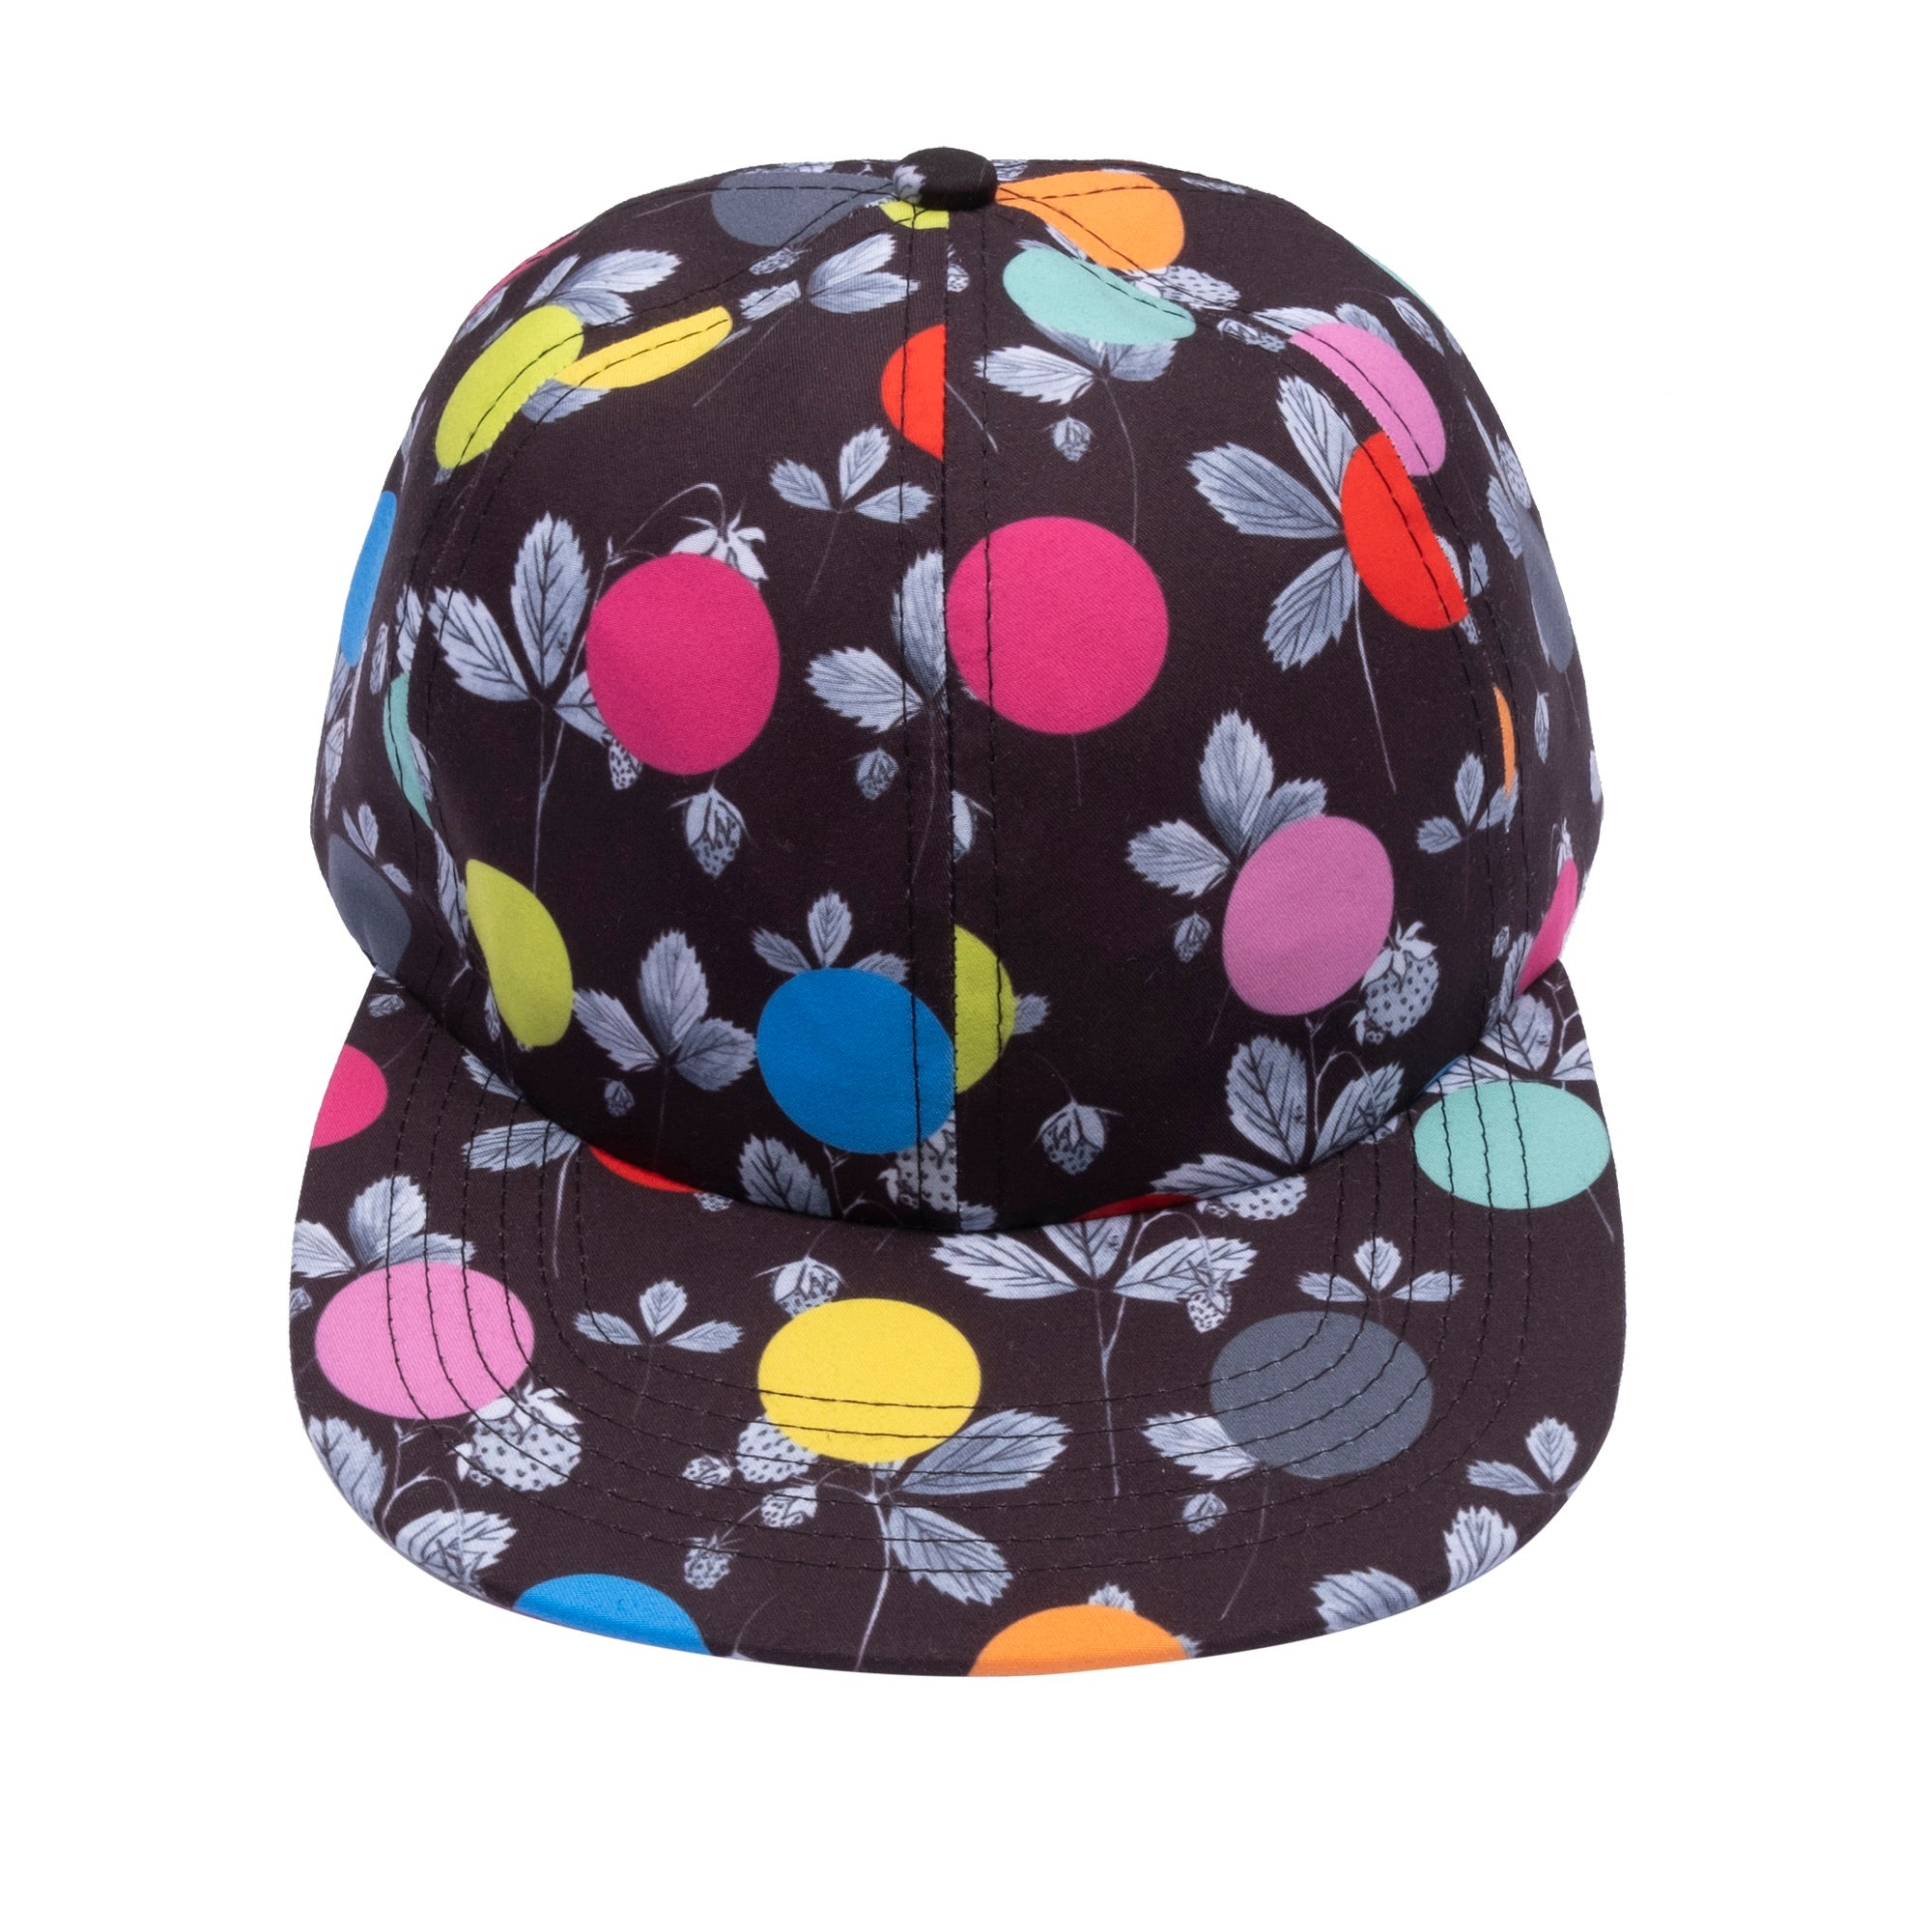 Chapeau Patrick x Color Factory Cap - colorfactoryshop